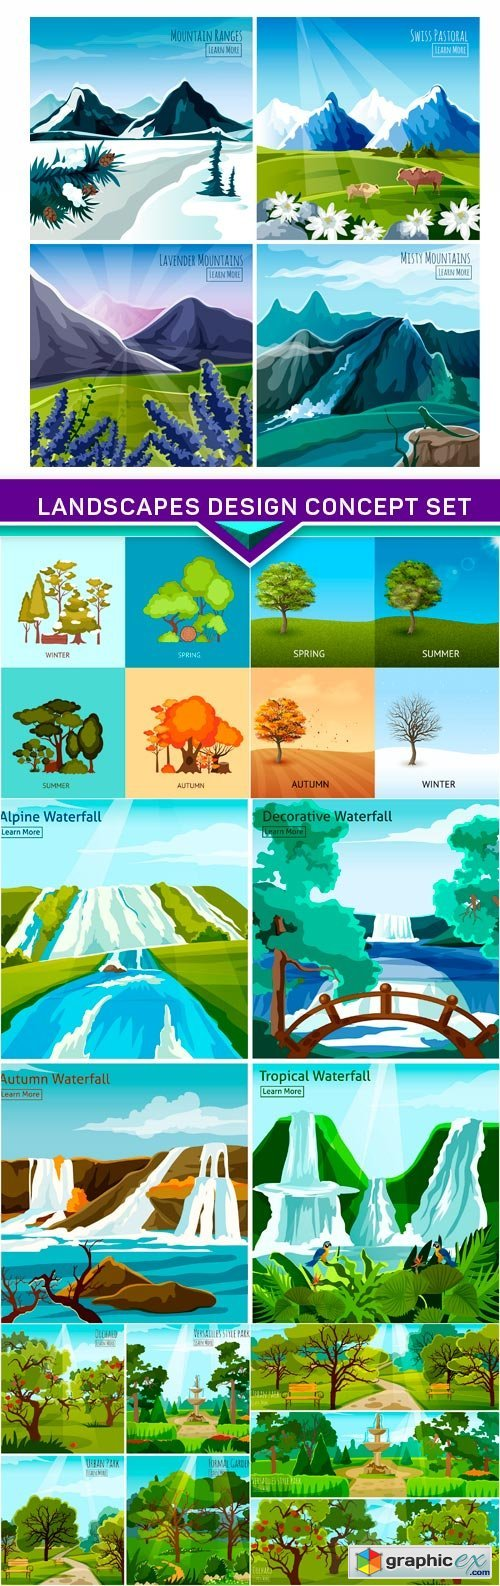 Landscapes design concept set 6X EPS